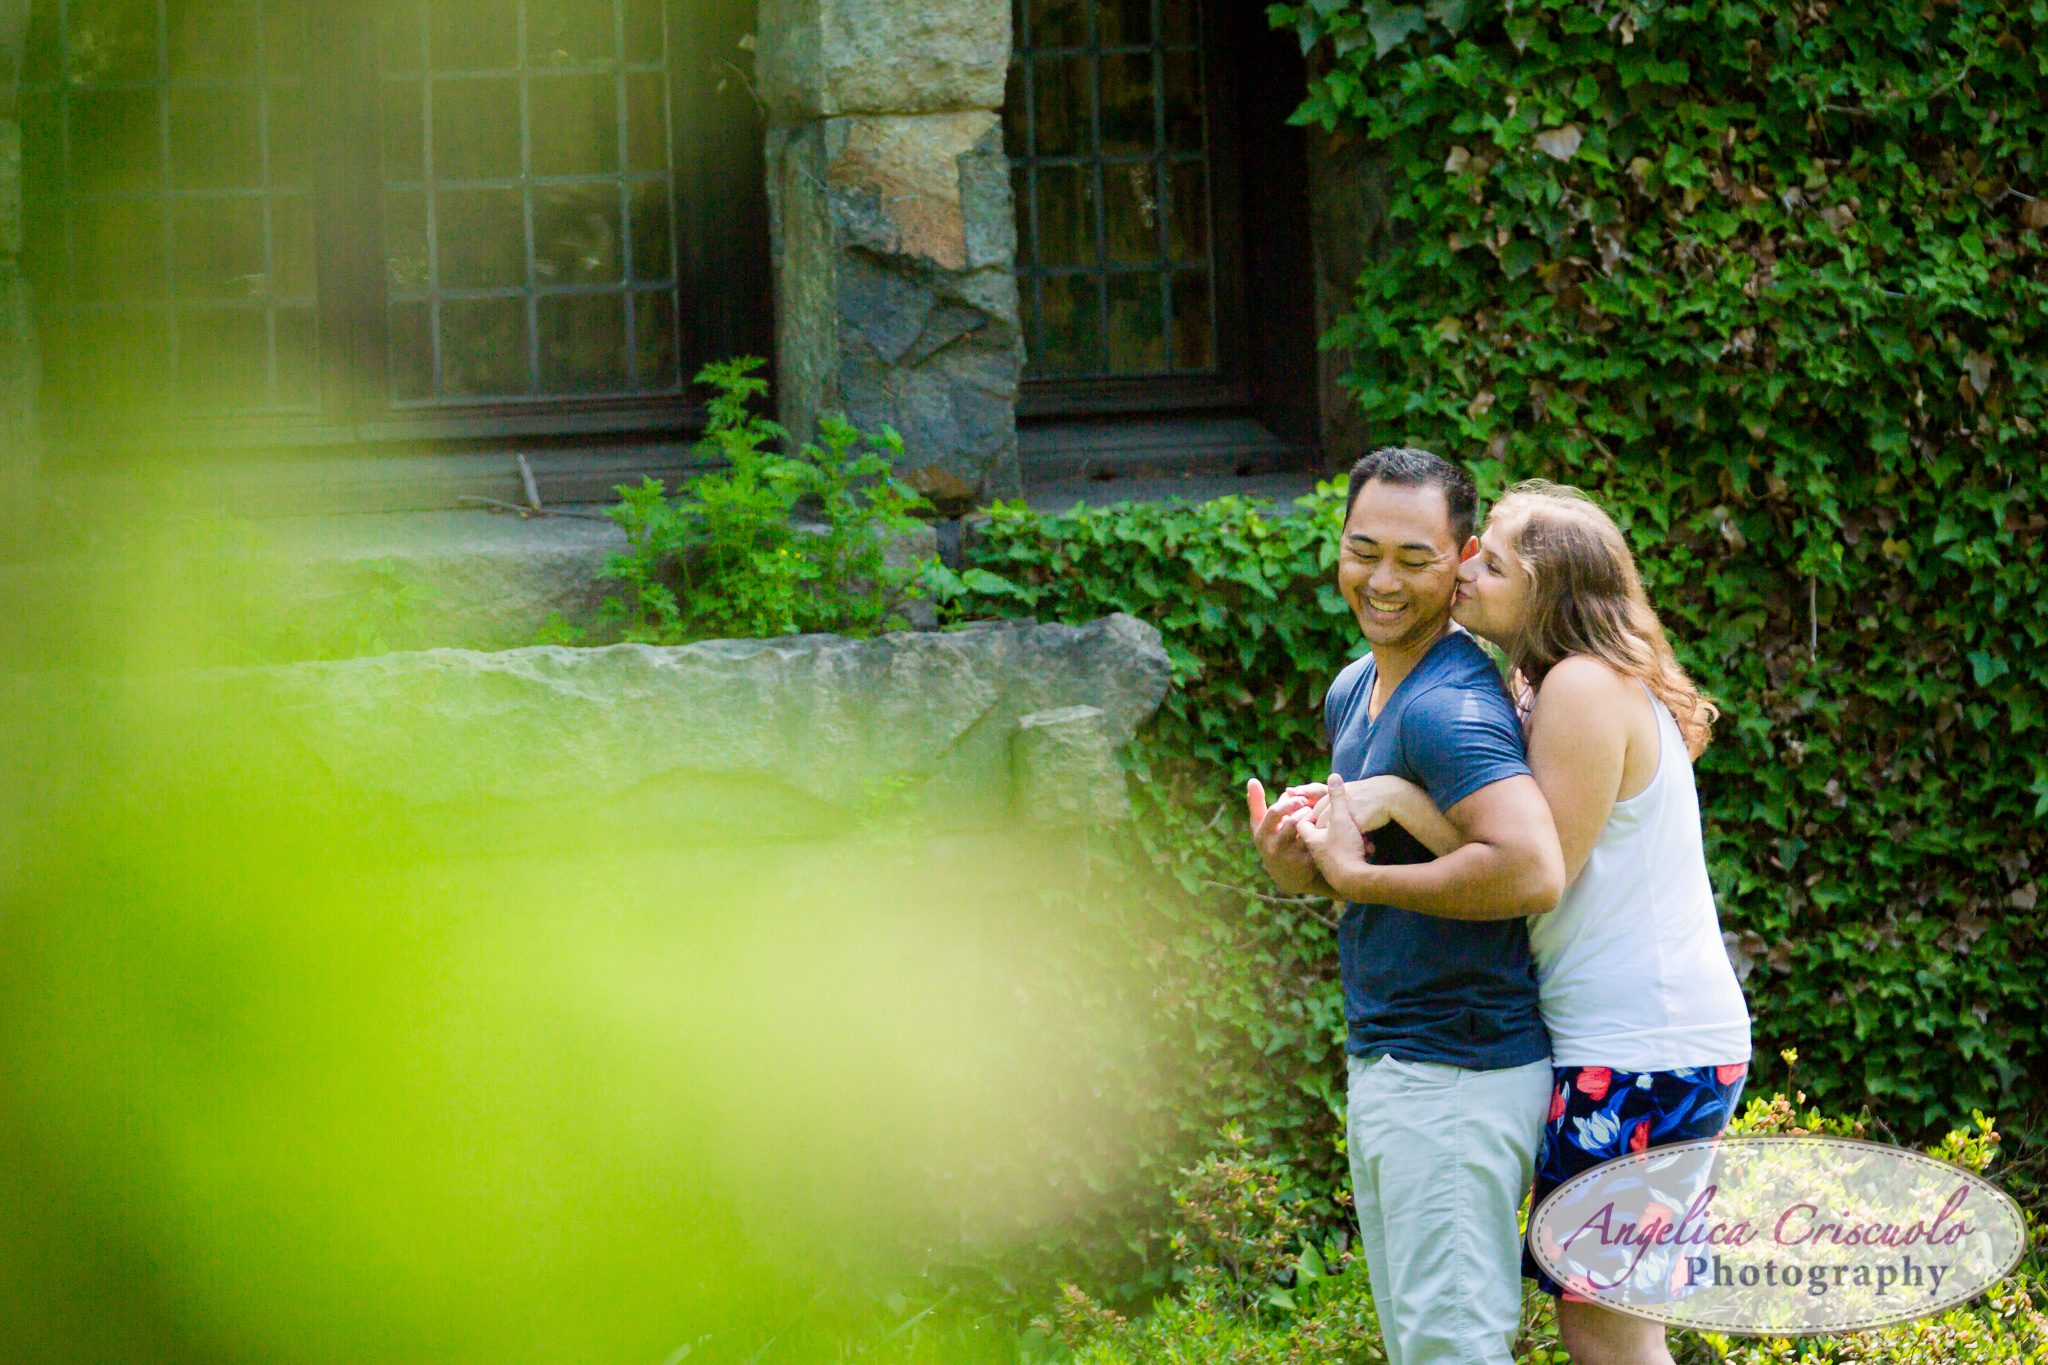 Fun engagement ideas and poses New Jersey wedding photographer